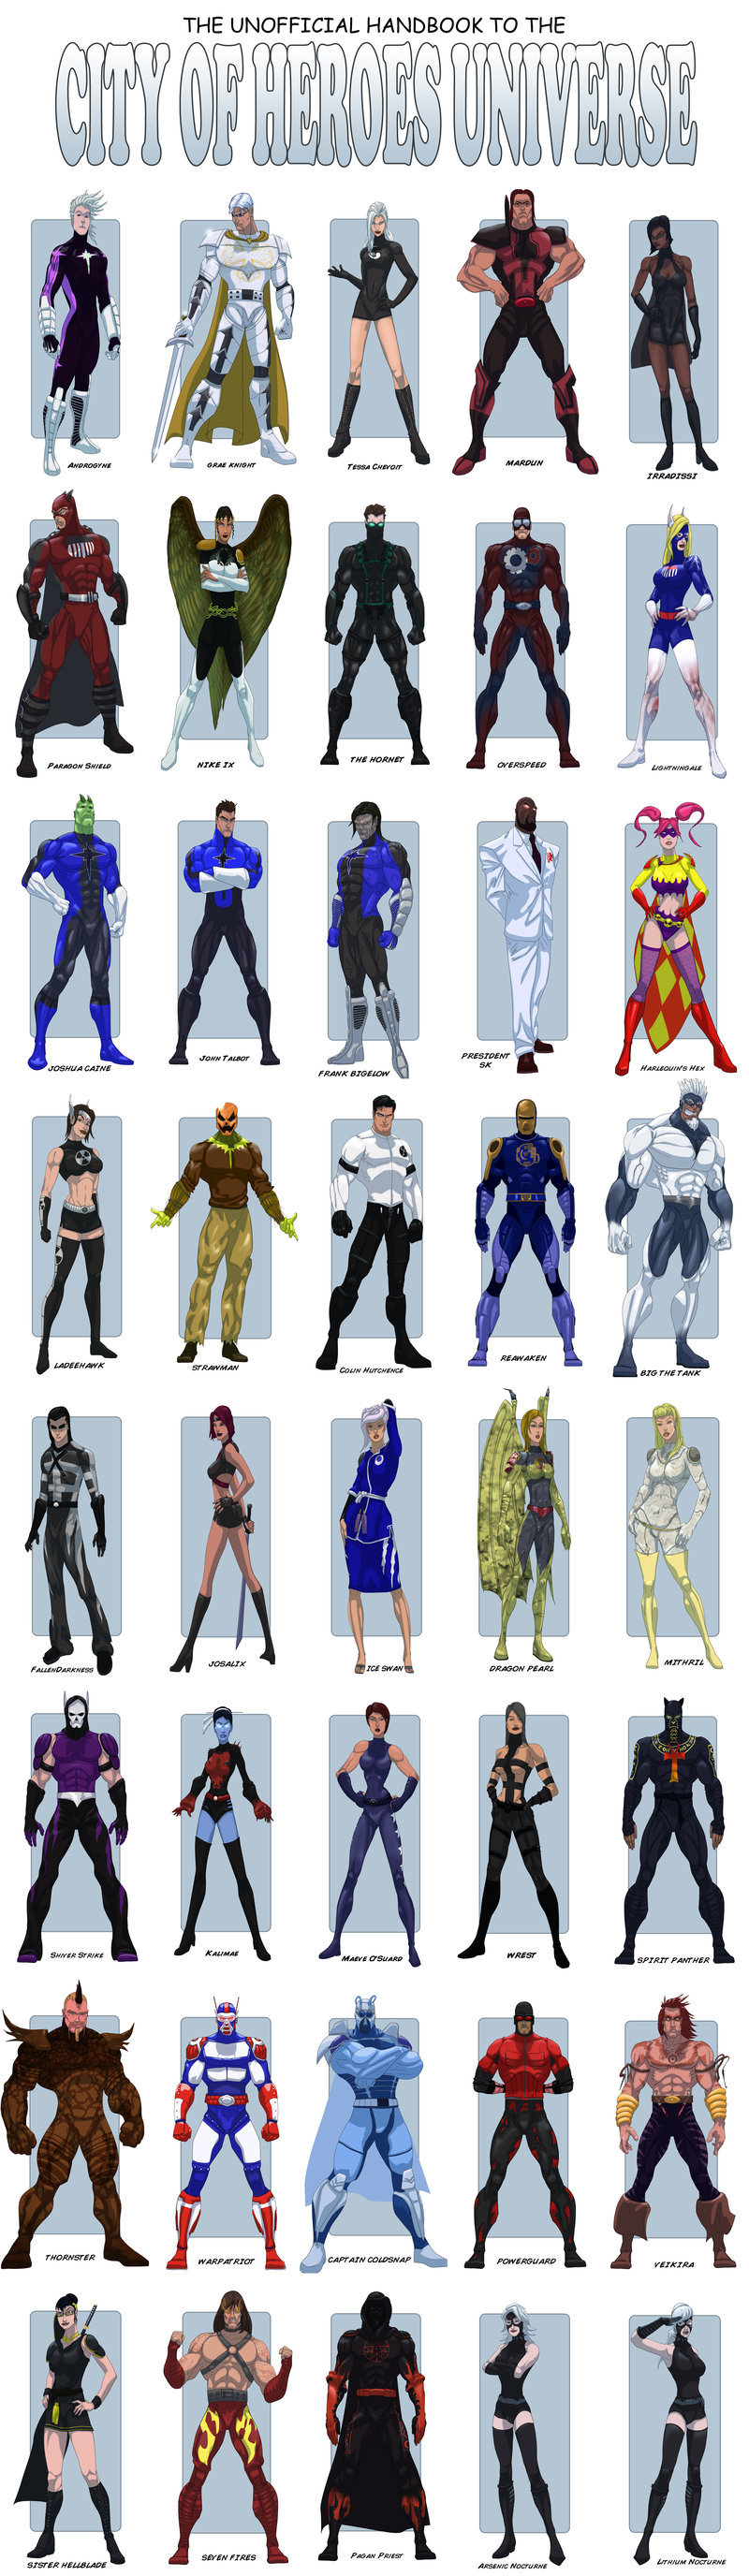 City Of Heroes Character favourites by Toeby on DeviantArt.